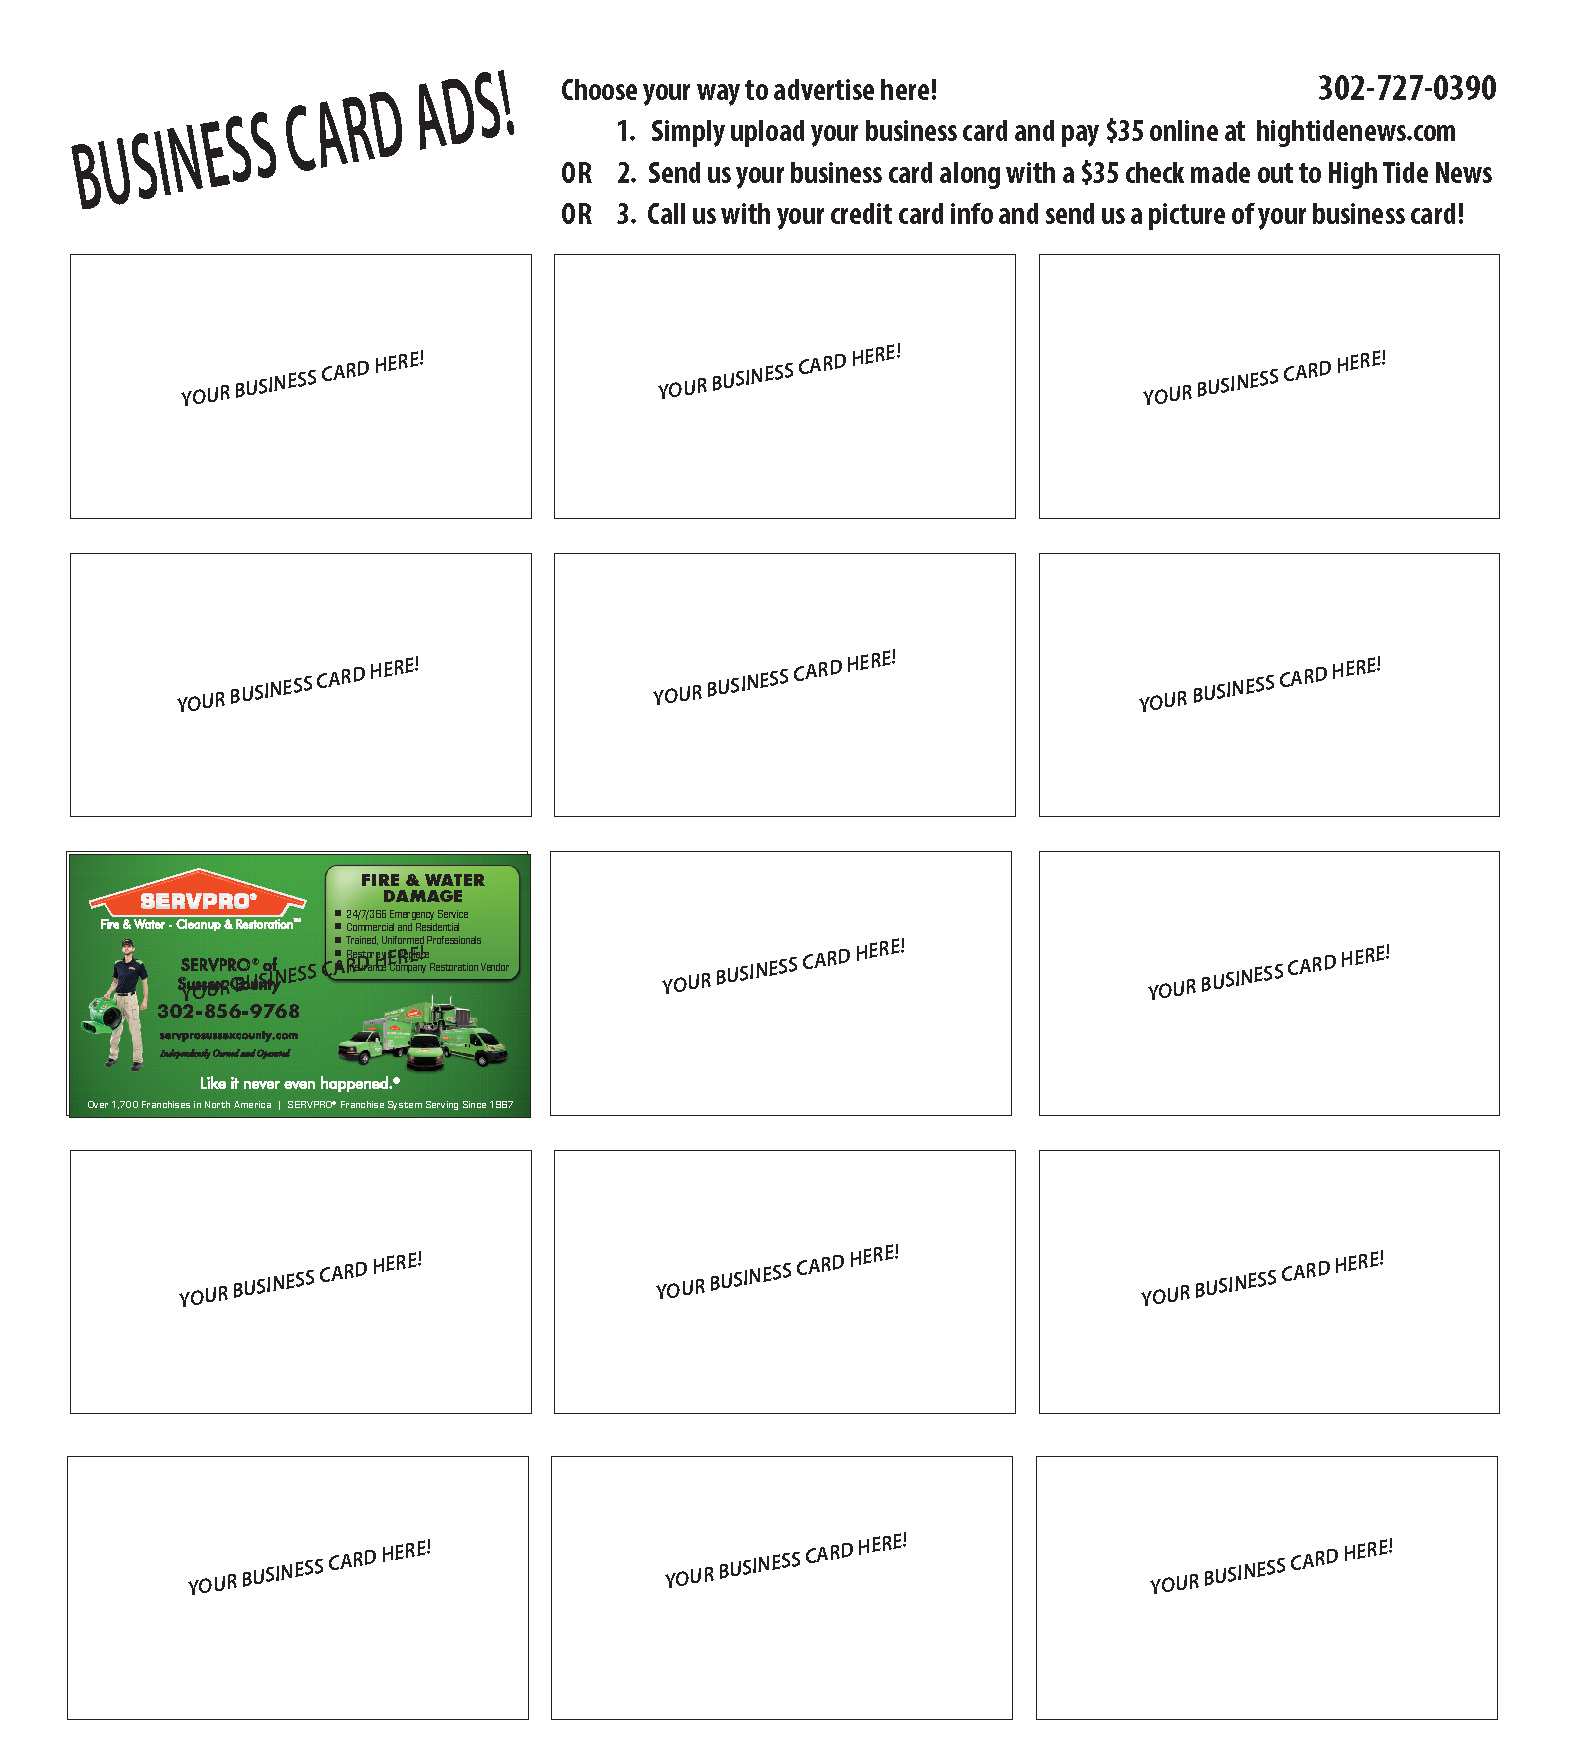 $50 Business Card Ad